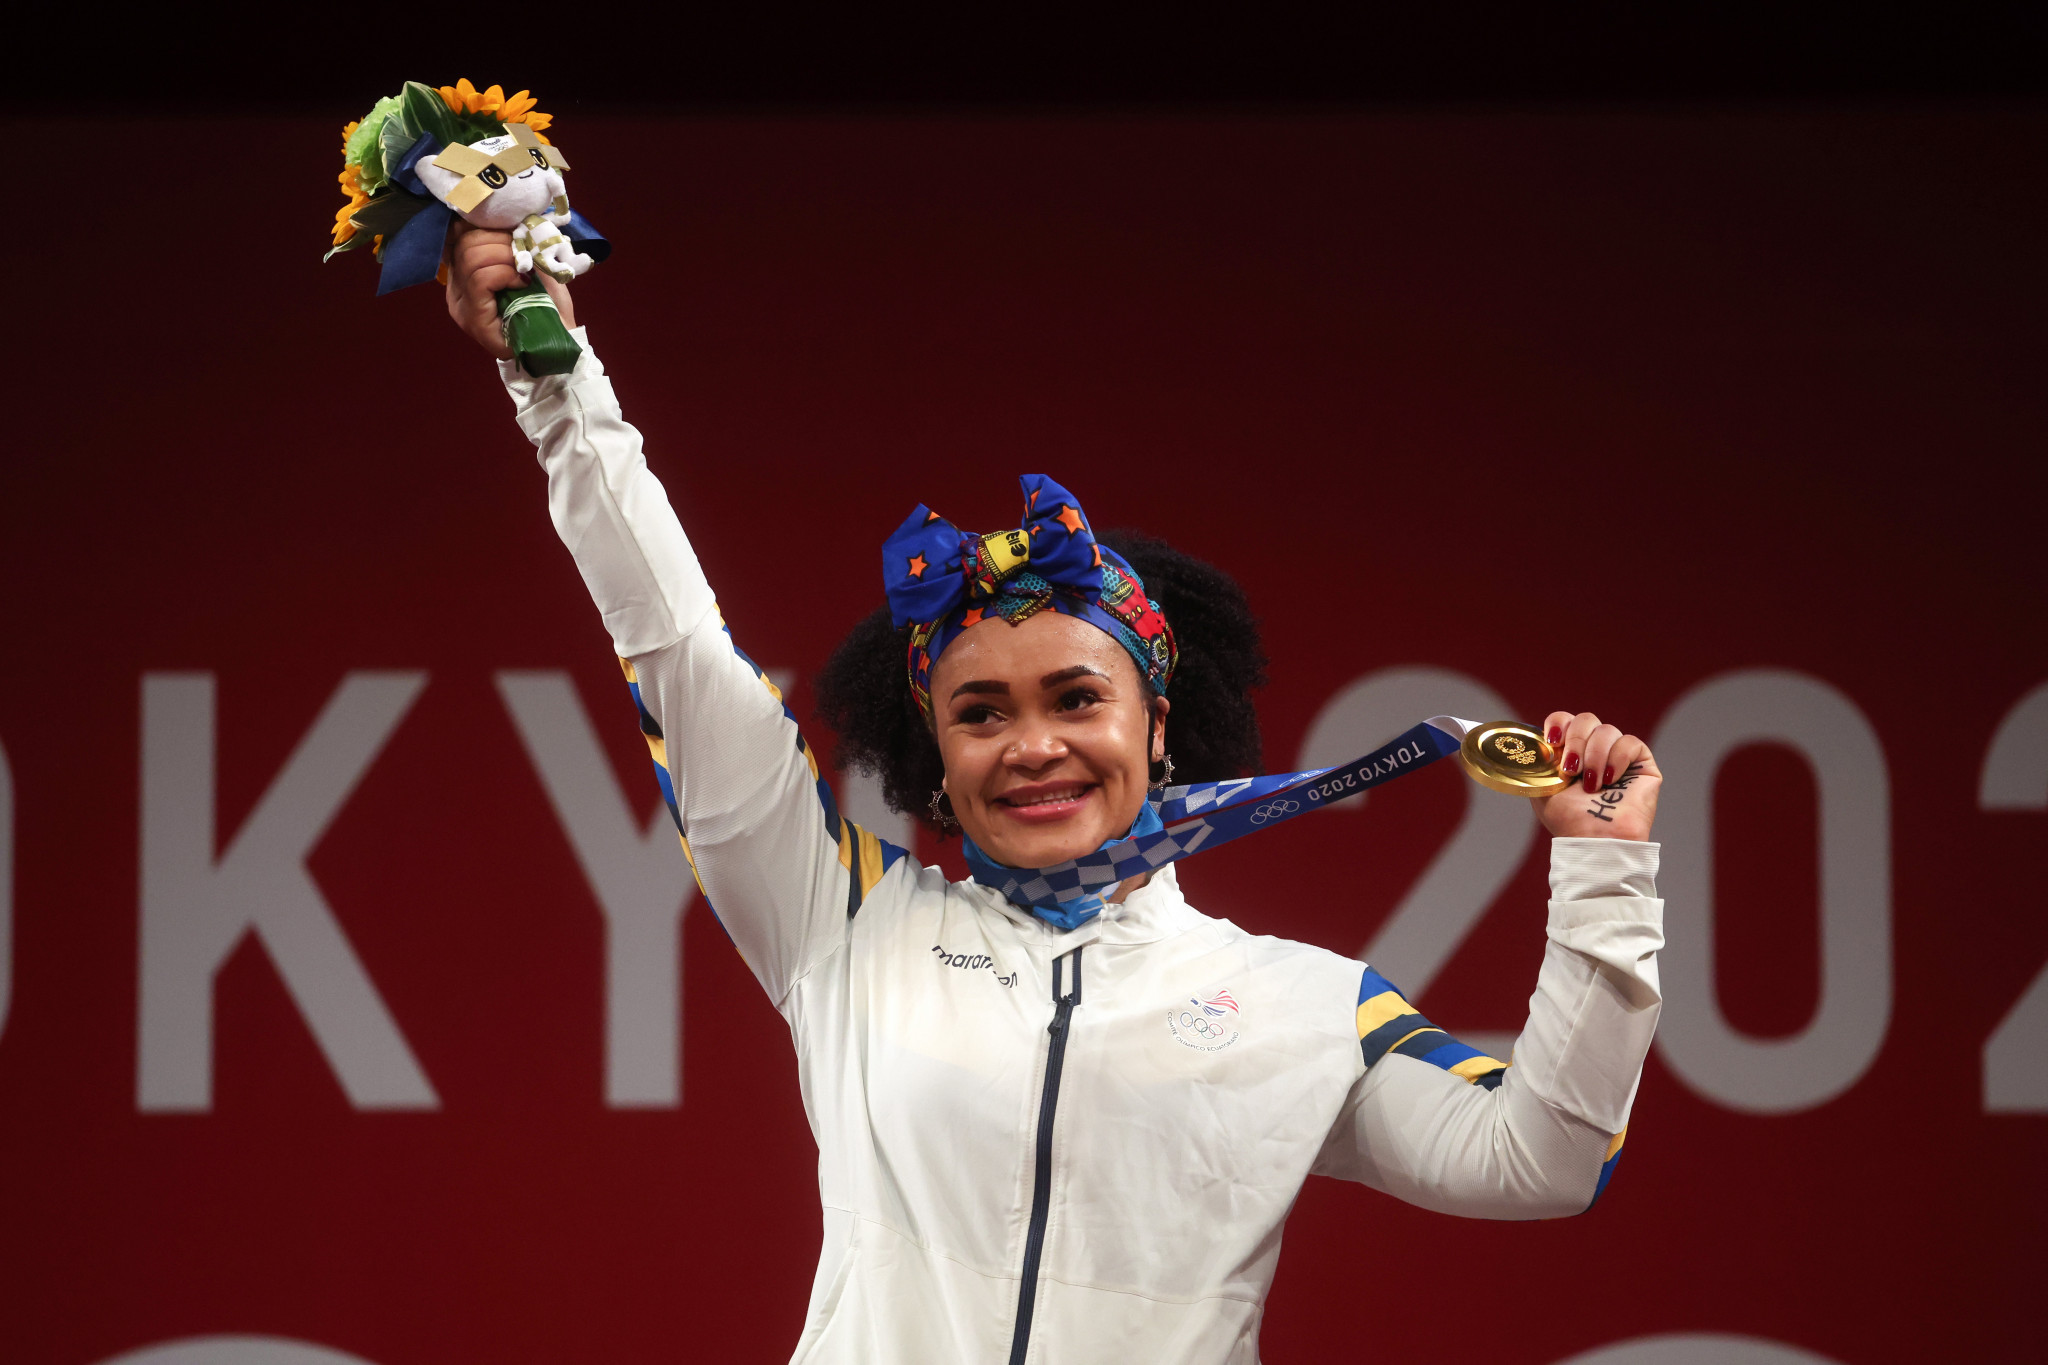 Weightlifter Dajomes wins landmark gold for Ecuador as American Nye takes silver